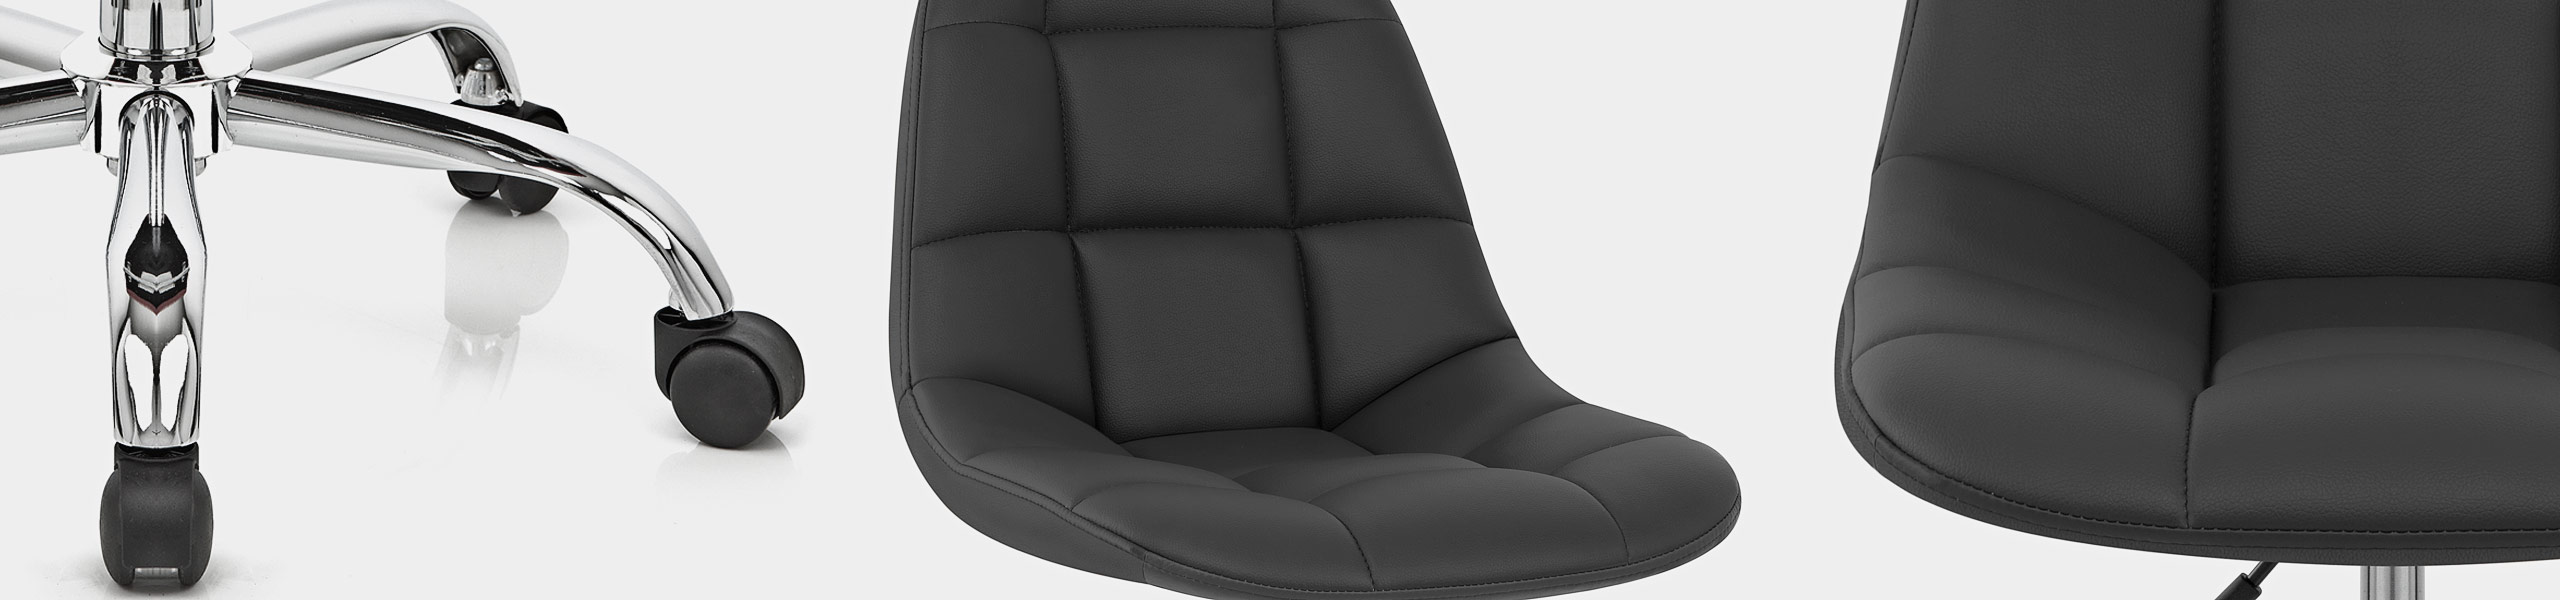 Rochelle Office Chair Black Video Banner